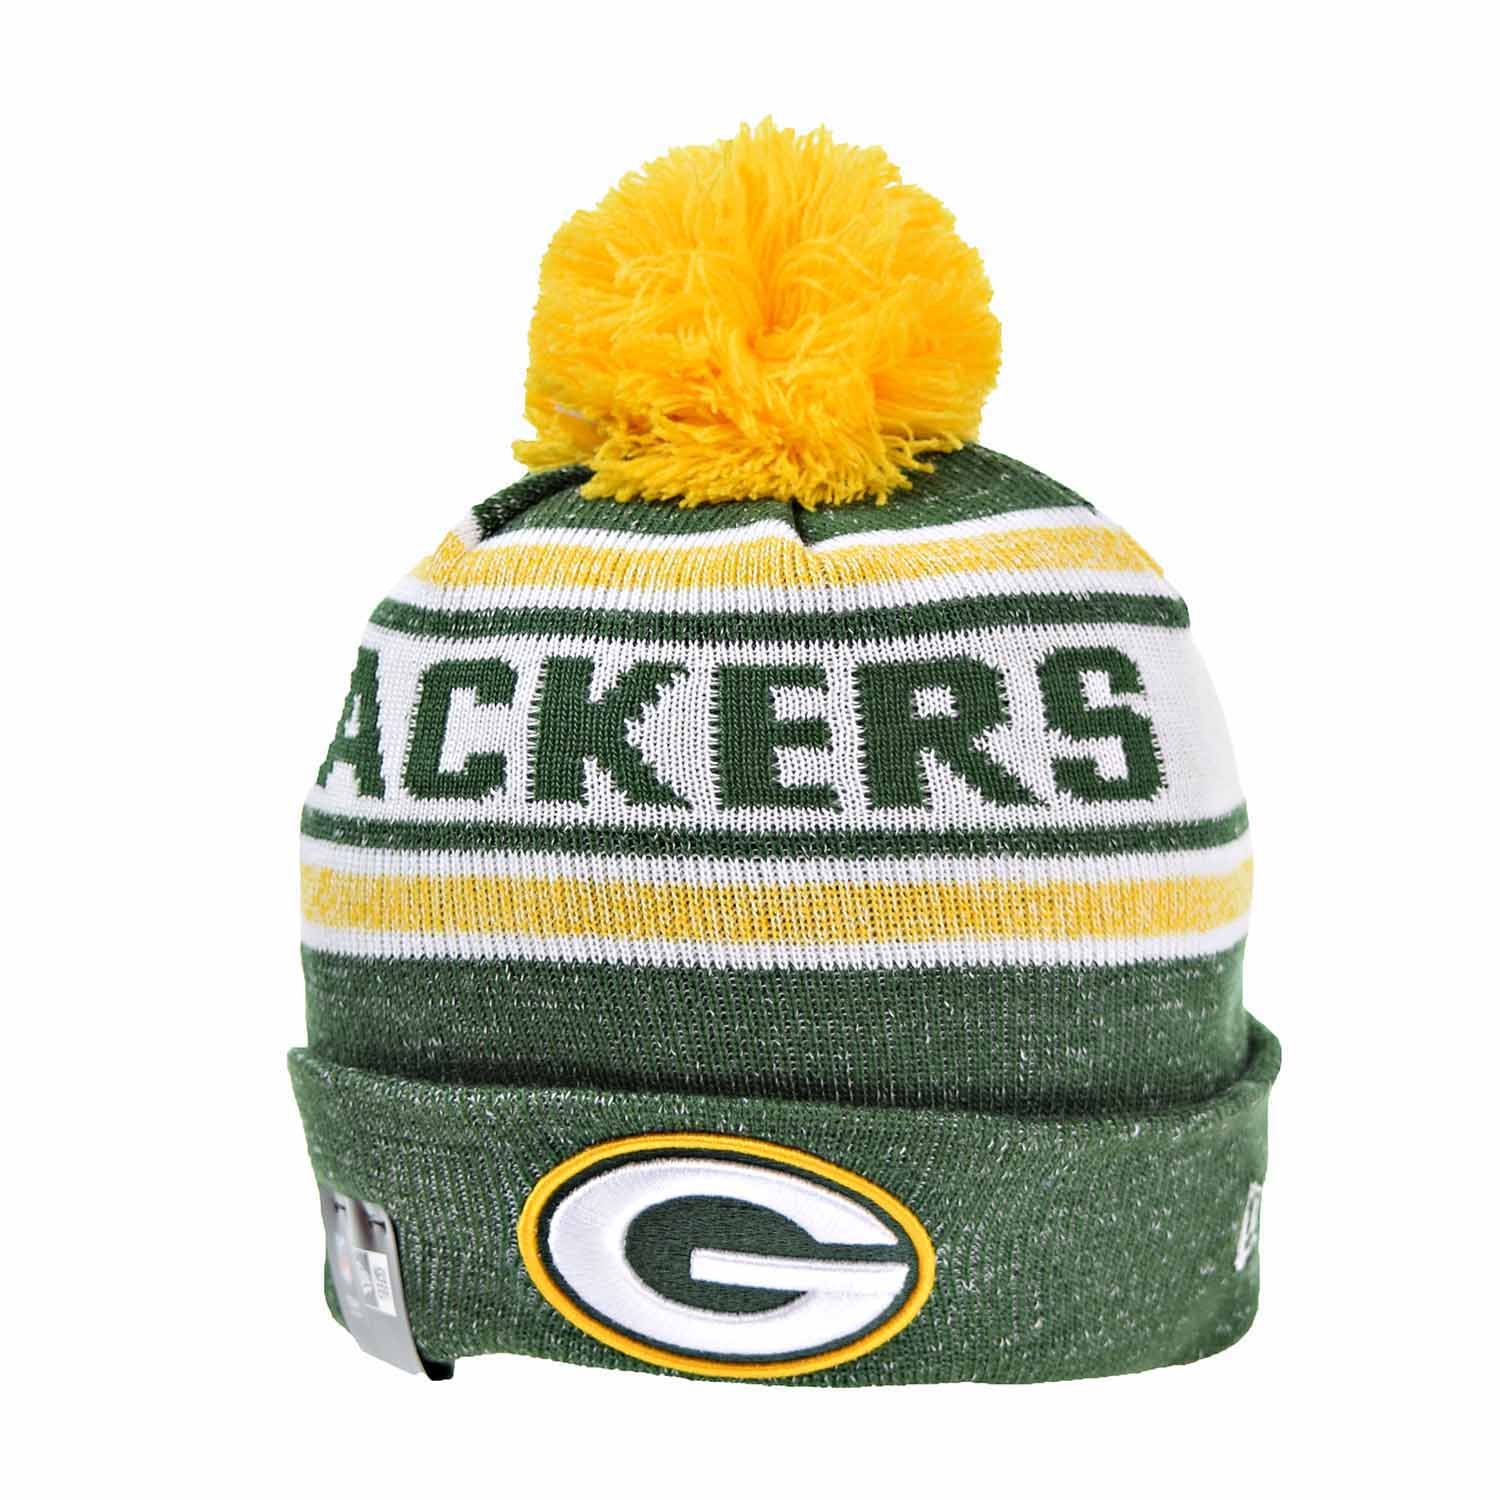 Amazon.com  Green Bay Packers New Era Toasty Cover Pom Knit Beanie Hat    Cap  Sports   Outdoors 45822990dd1